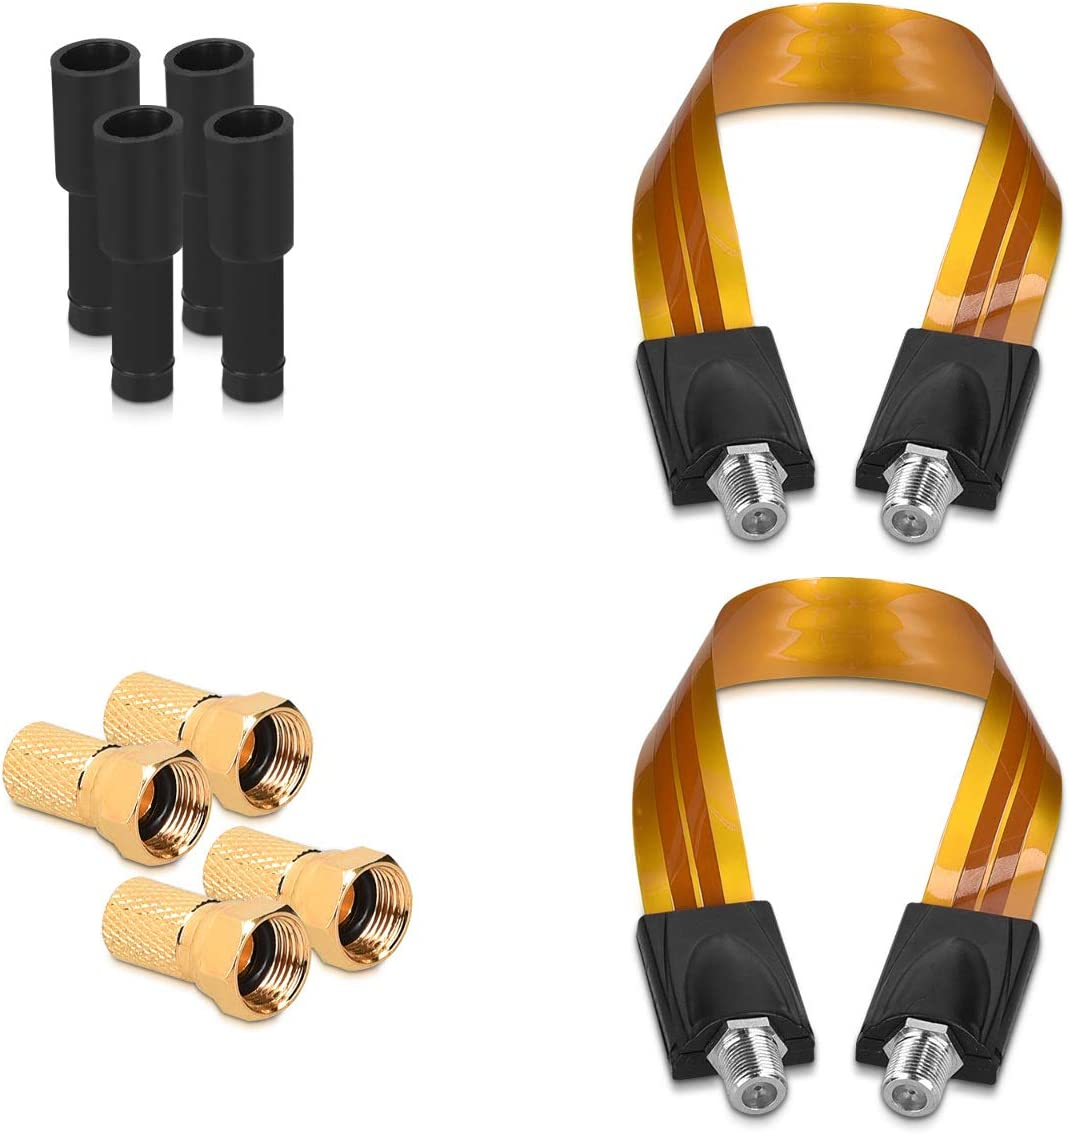 Caravan Orange Doors kwmobile Flat Coaxial Window Cables Set of 2 Satellite Feed-Through F-Plug Coax Connector Feedthrough Cable for Windows